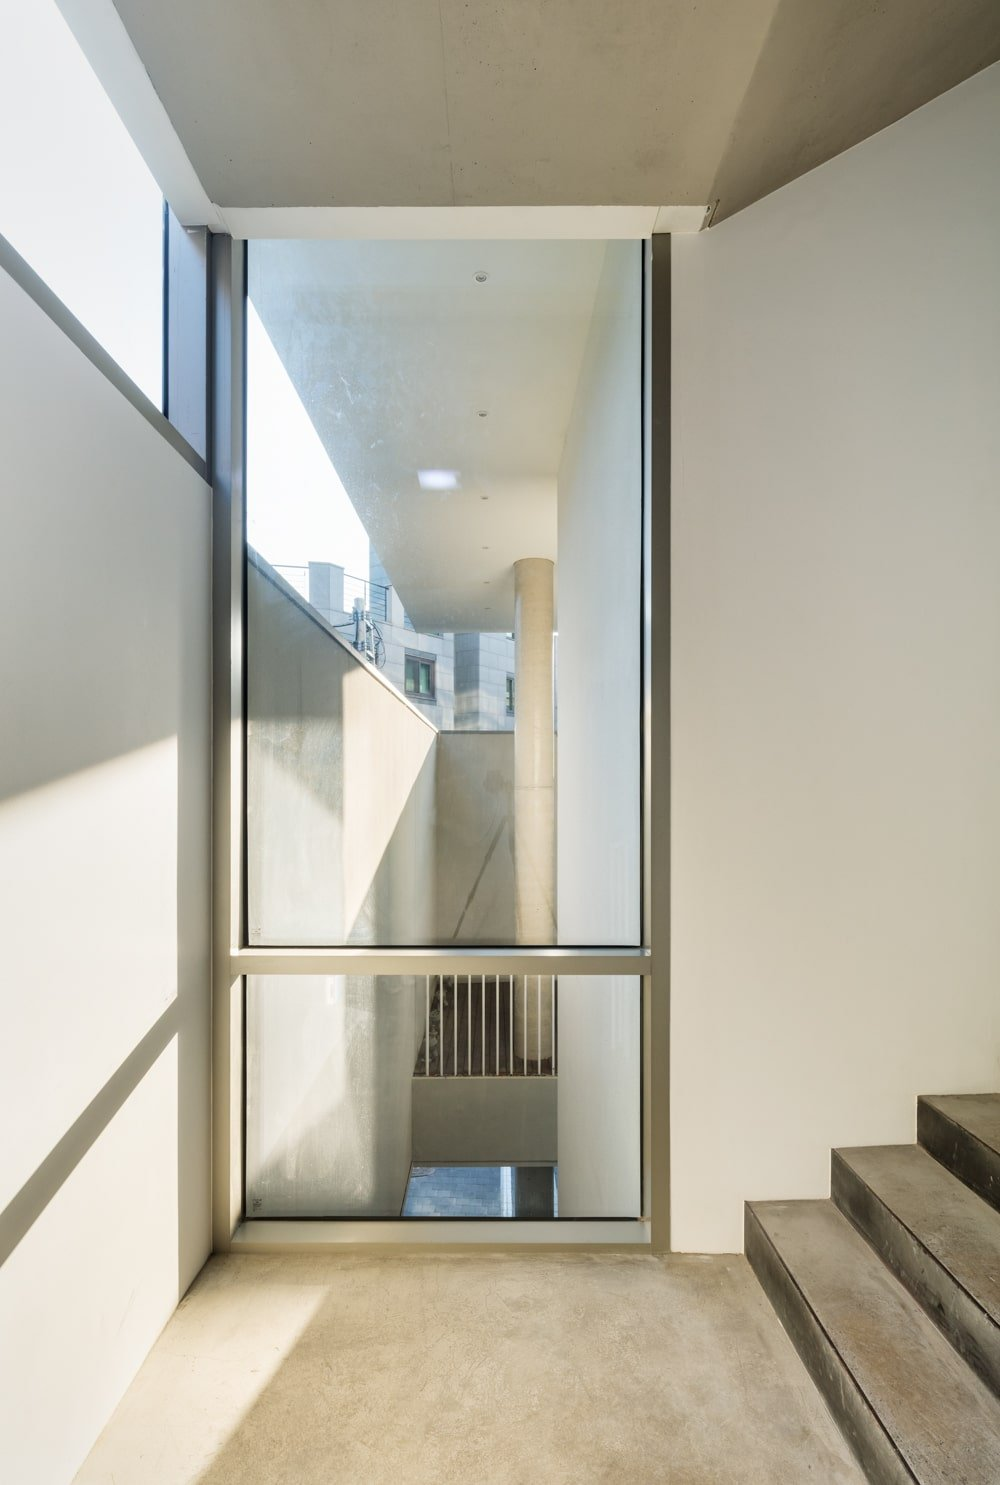 This is a close look at the staircase with beige walls and a large glass window on the corner by the landing for natural lights.